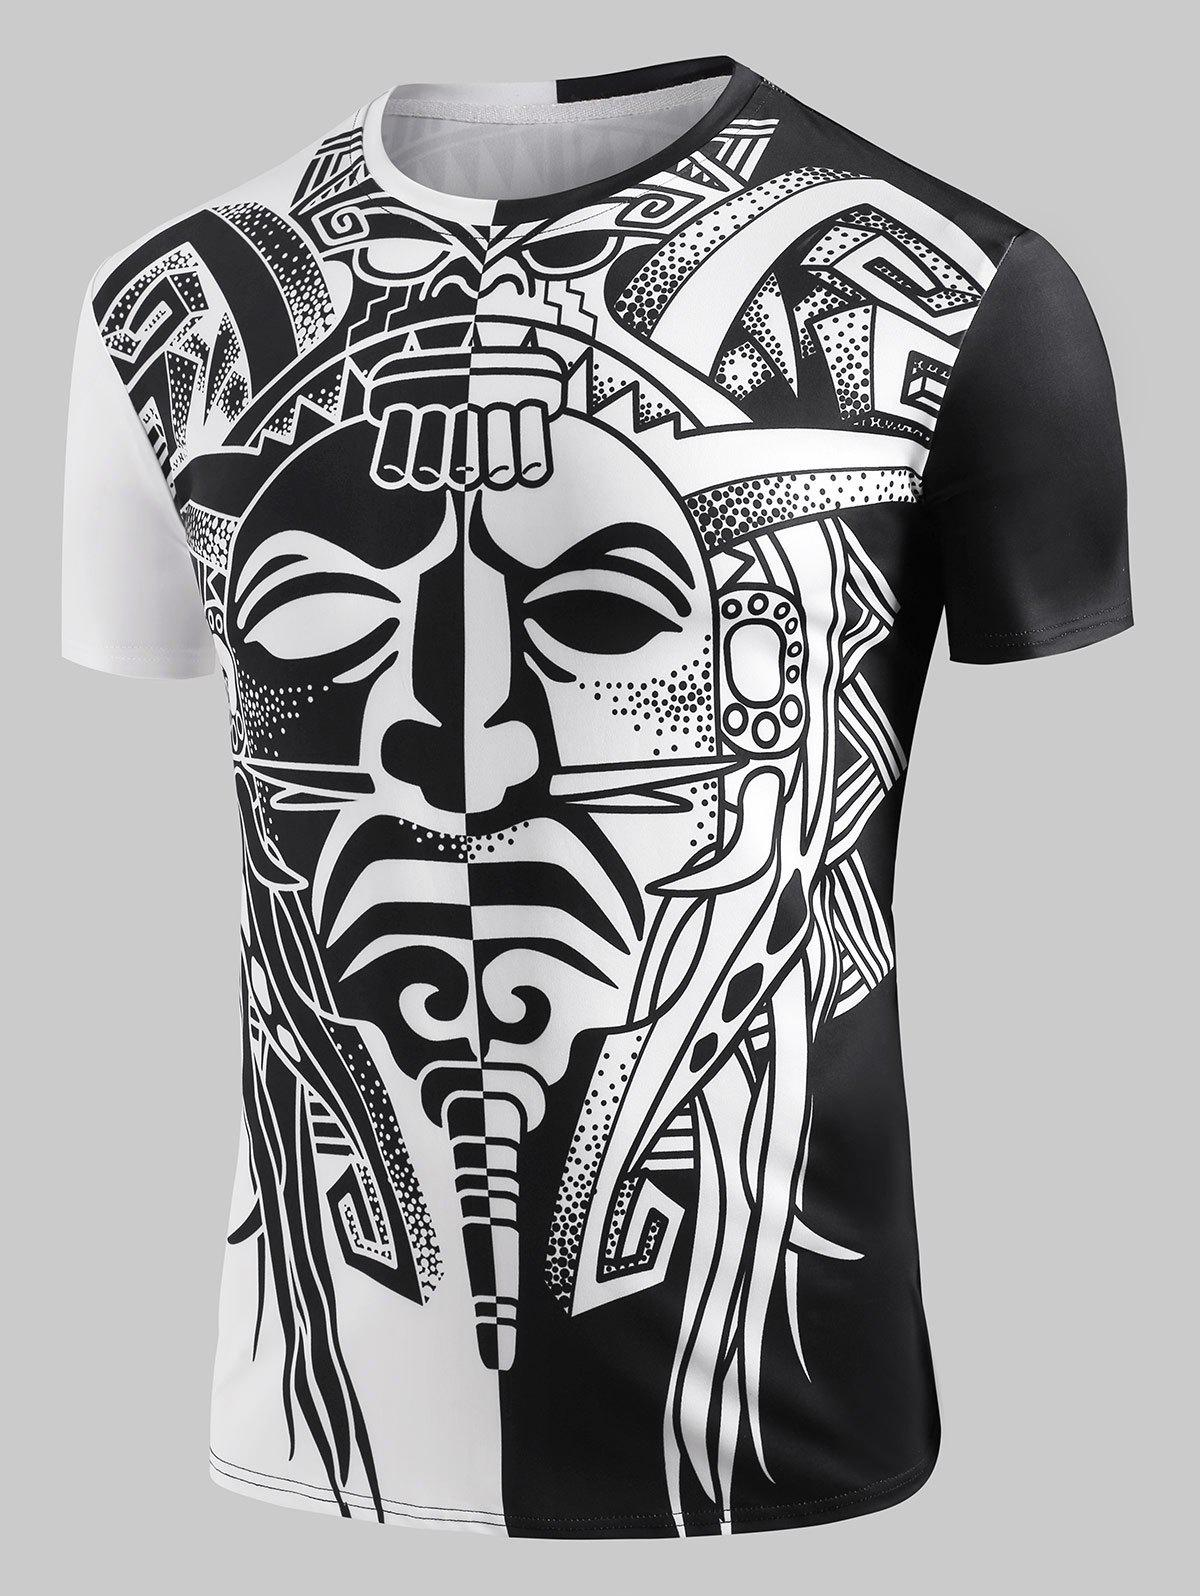 Sale Ying and Yang Aztec Totem Graphic T-shirt